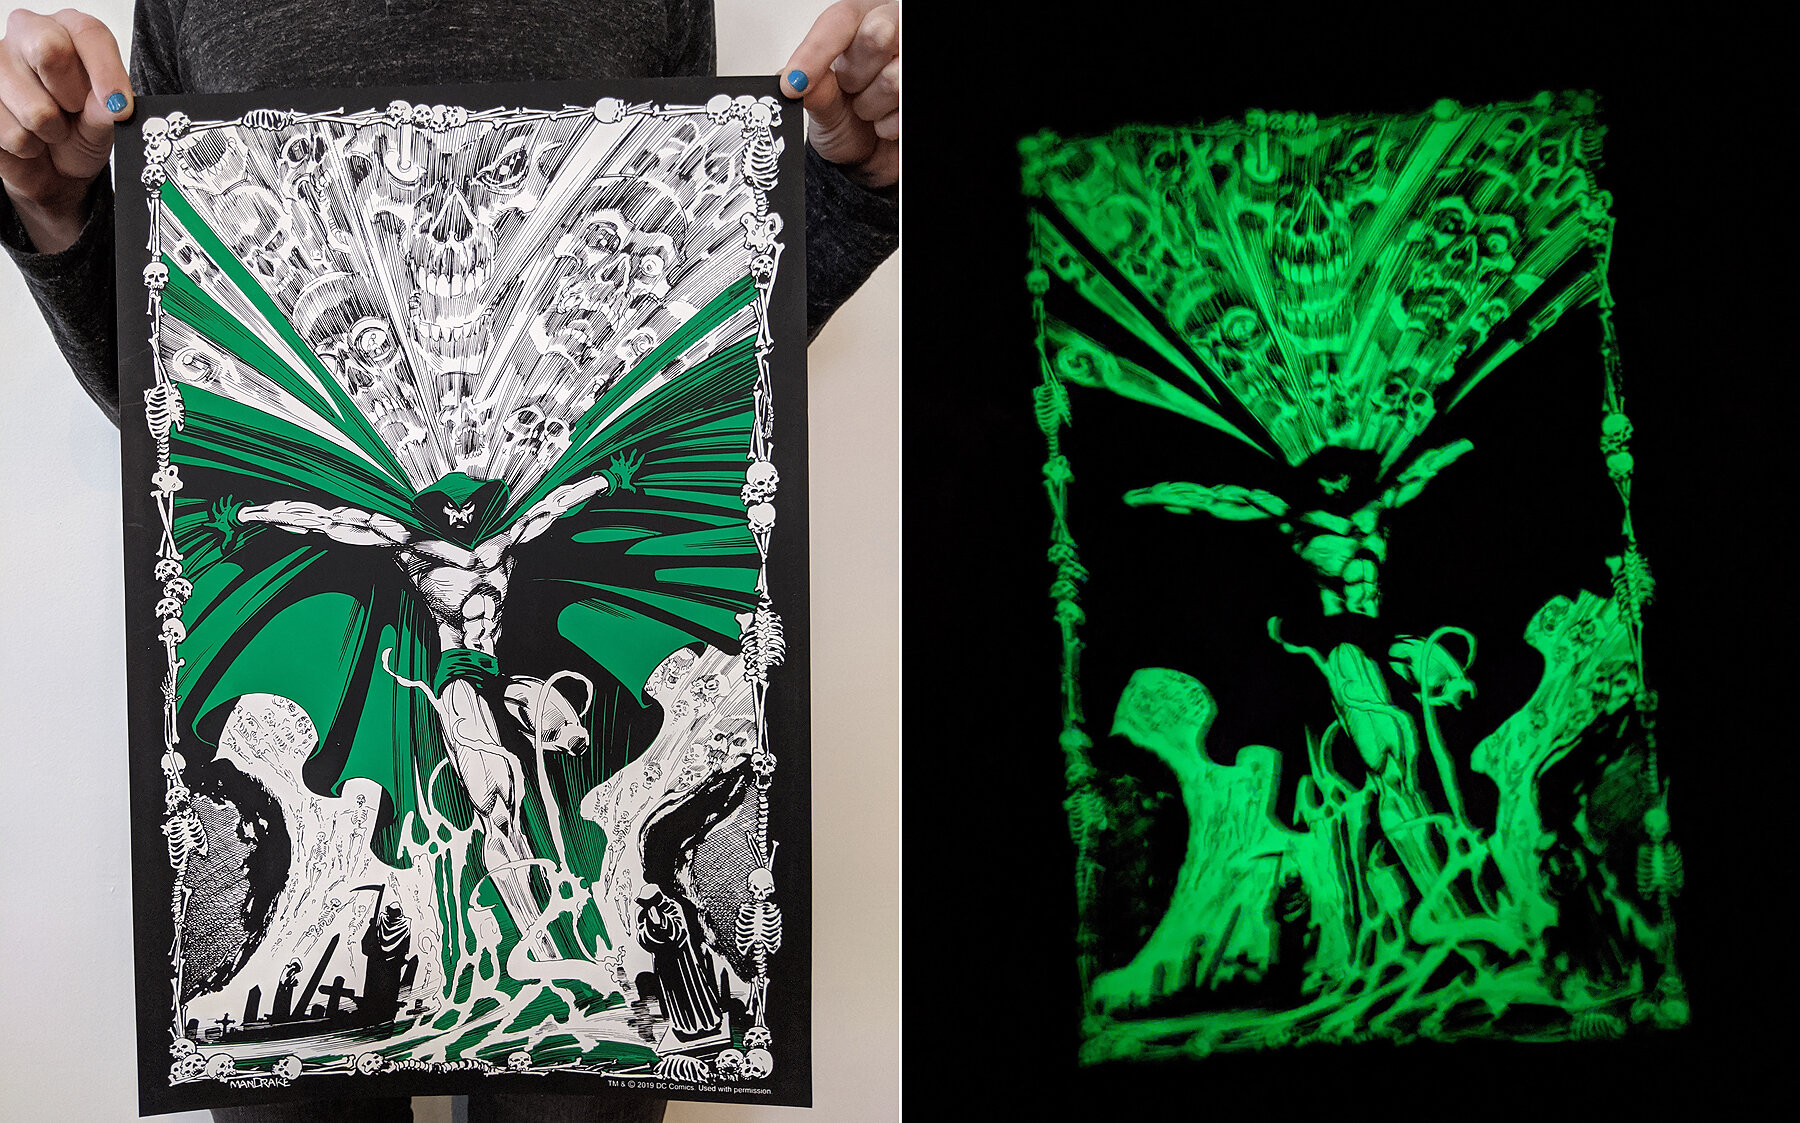 3 color screen printed poster with glow in the dark ink